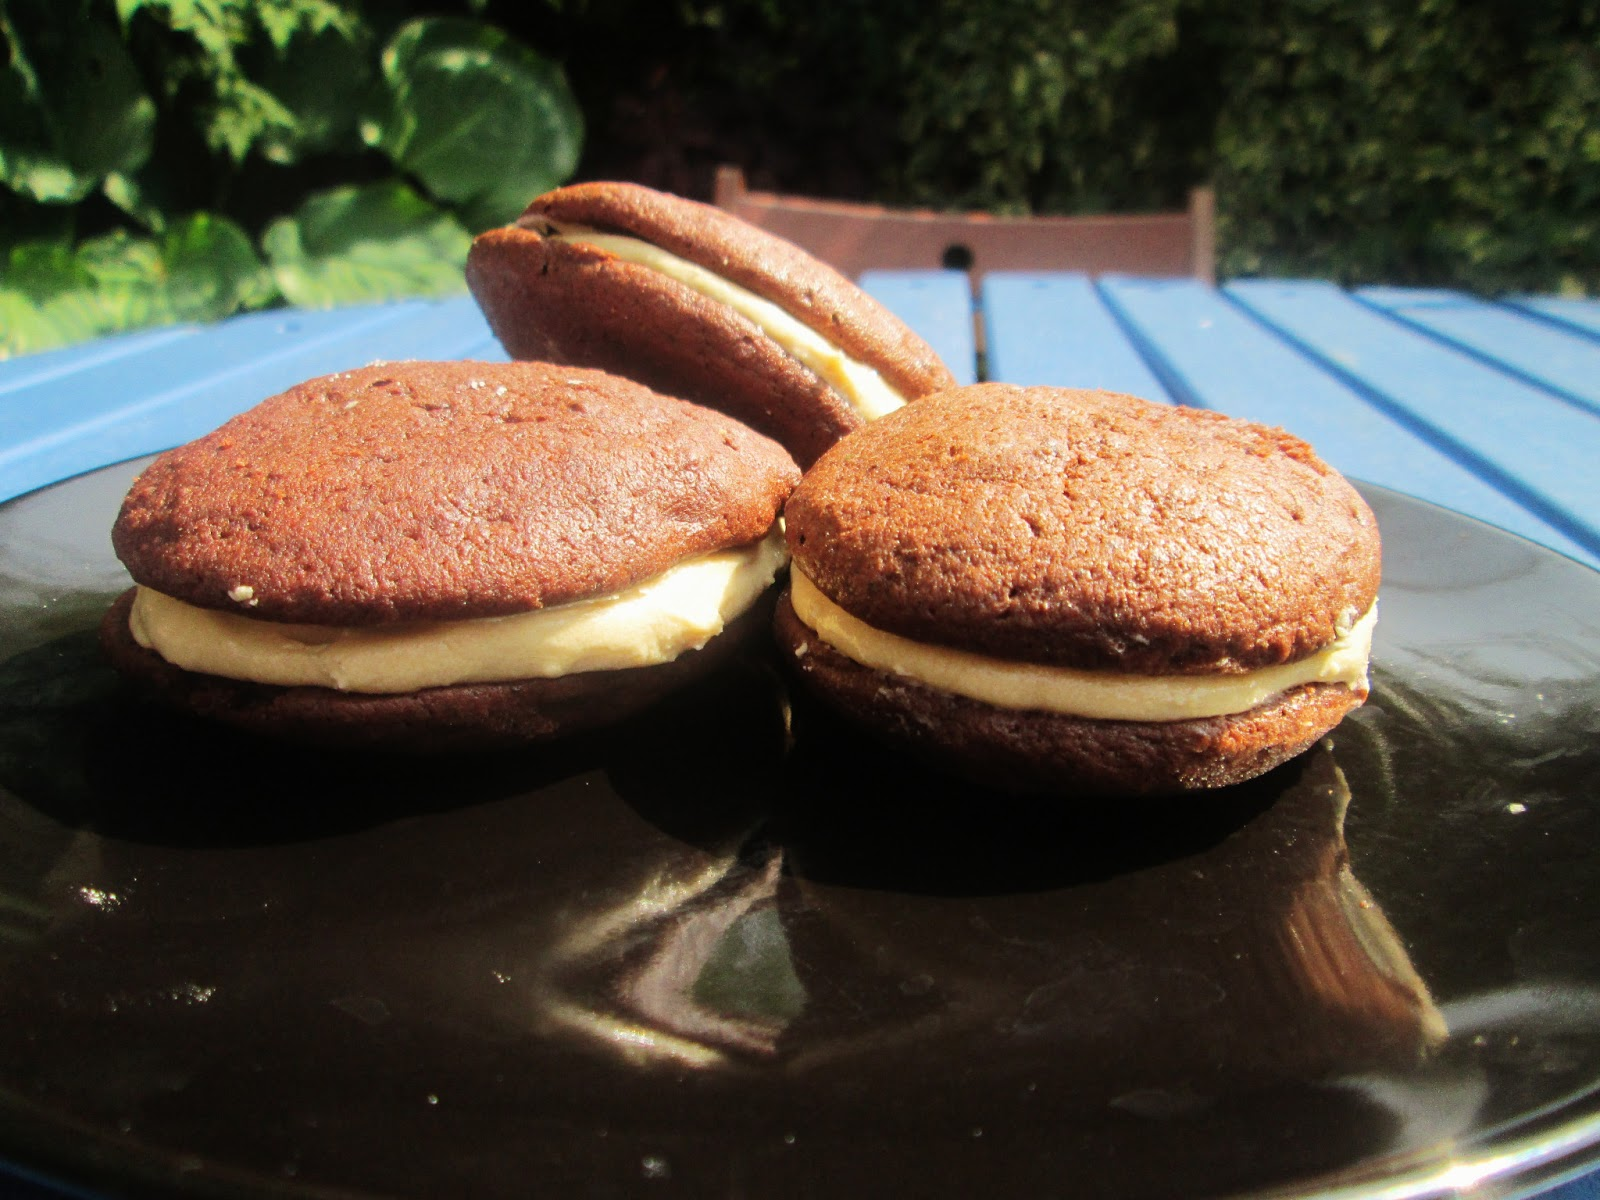 http://themessykitchenuk.blogspot.co.uk/2013/07/chocolate-whoopie-pies-with-coffee.html